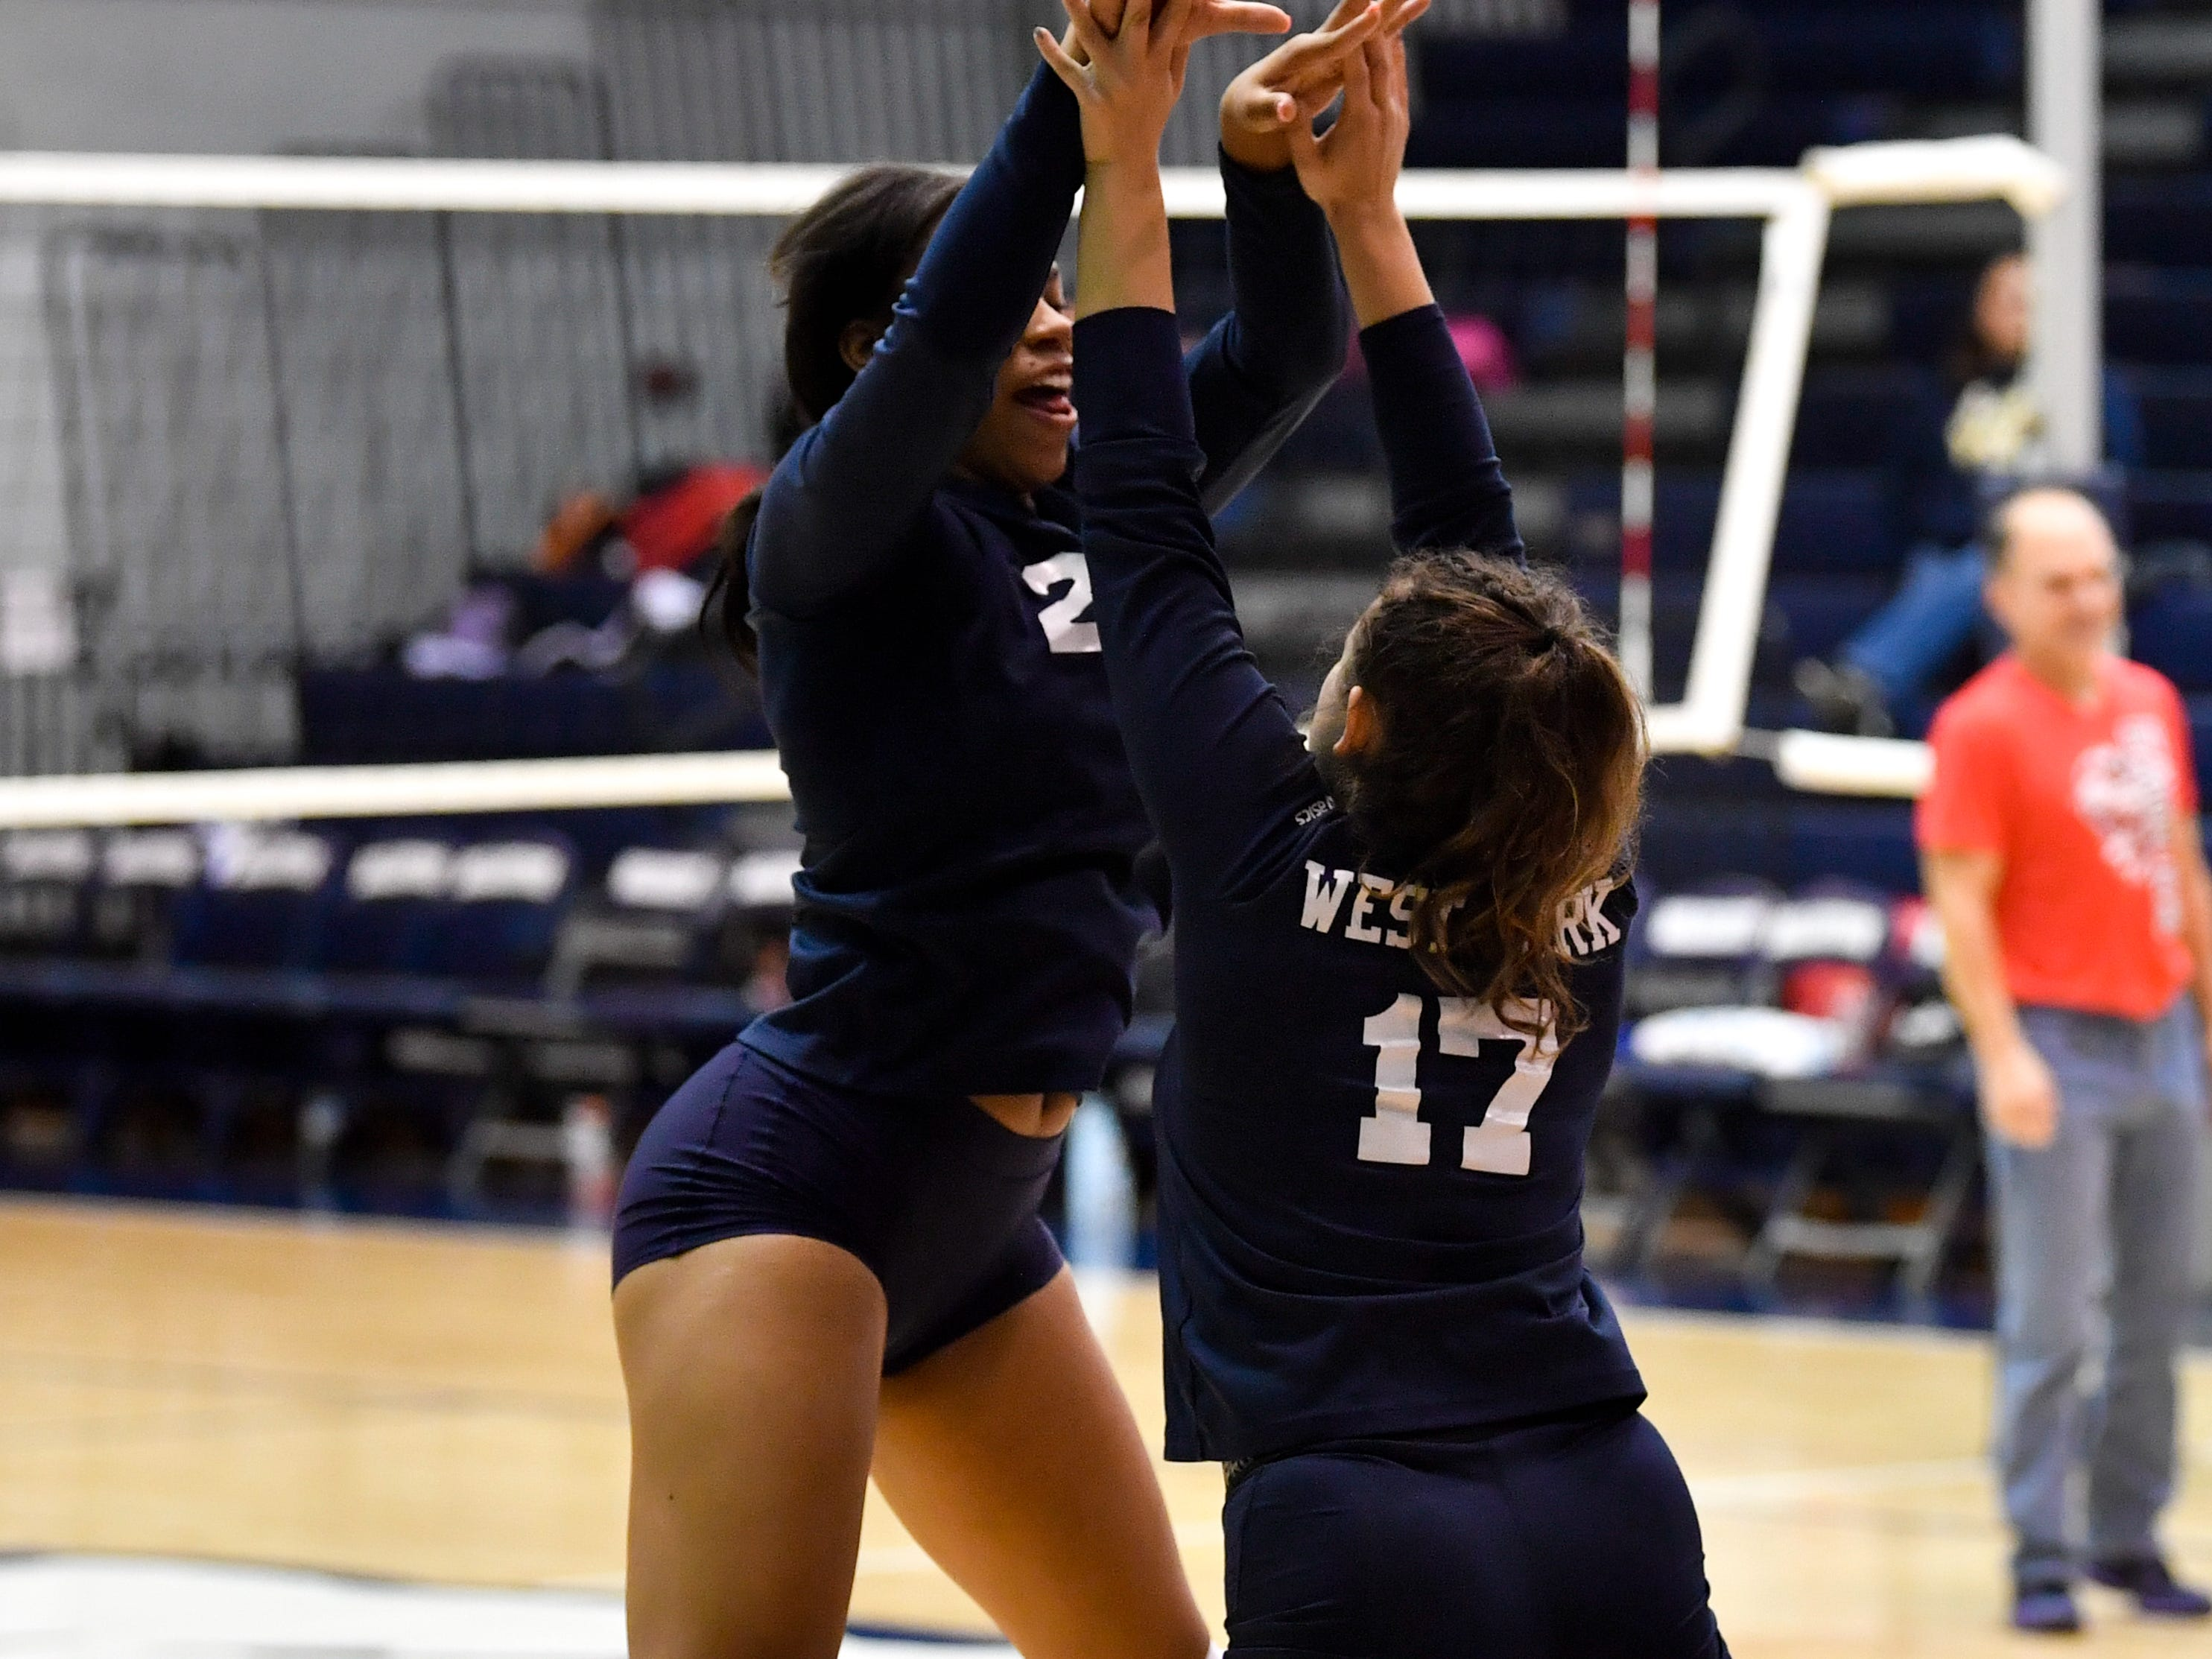 Alayna Harris (23) and Taylor Morley (17) give each other a high-five during the YAIAA league volleyball tournament semifinals between West York and Dover, Tuesday, October 23, 2018. The Bulldogs defeated the Eagles 3-1.